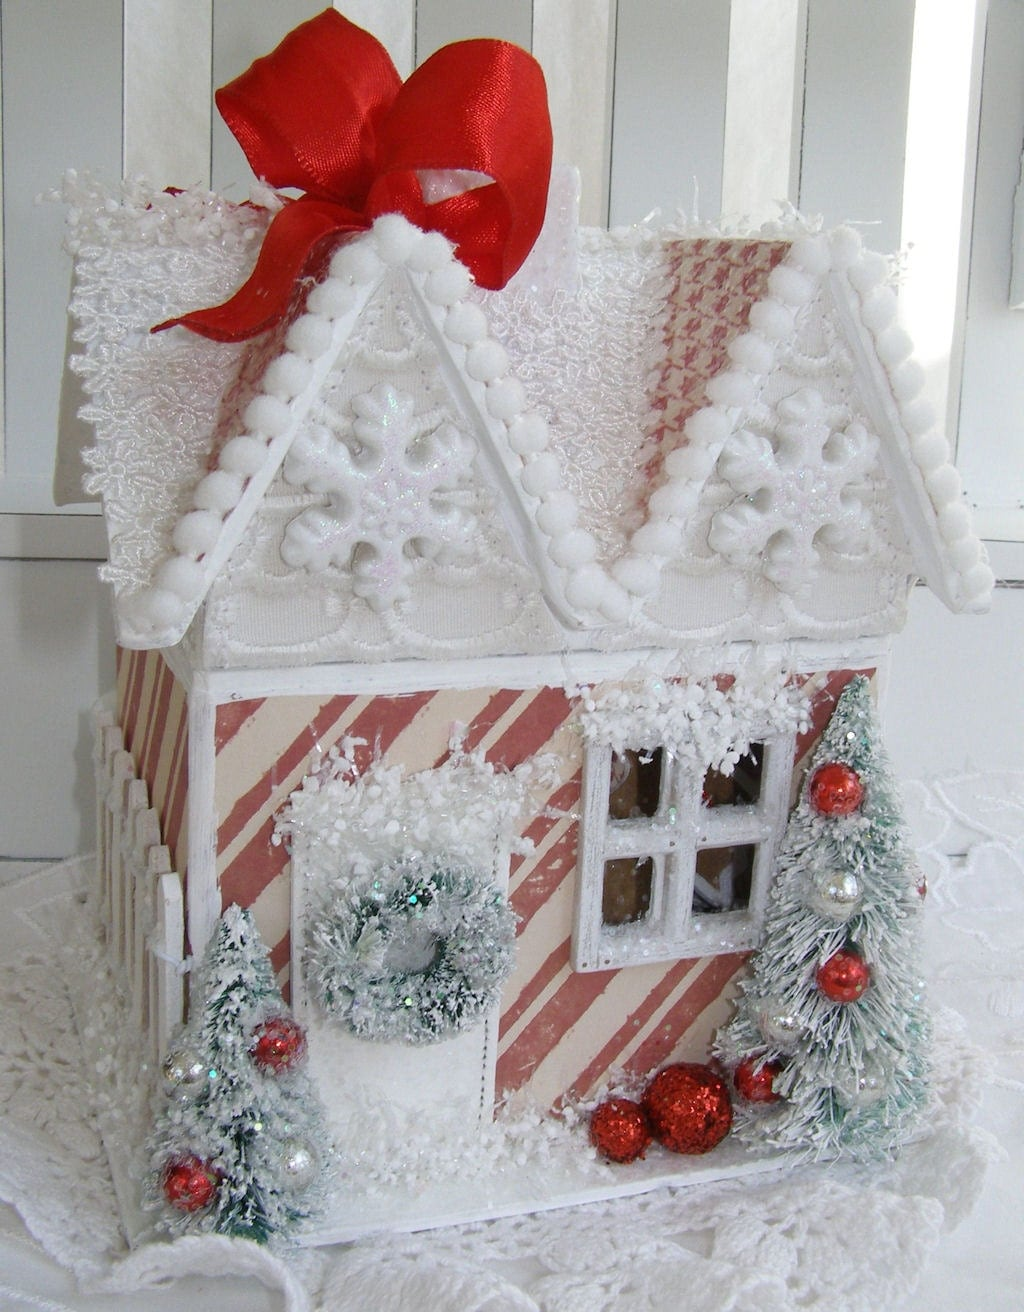 gingerbread house christmas decoration and ornaments. Black Bedroom Furniture Sets. Home Design Ideas